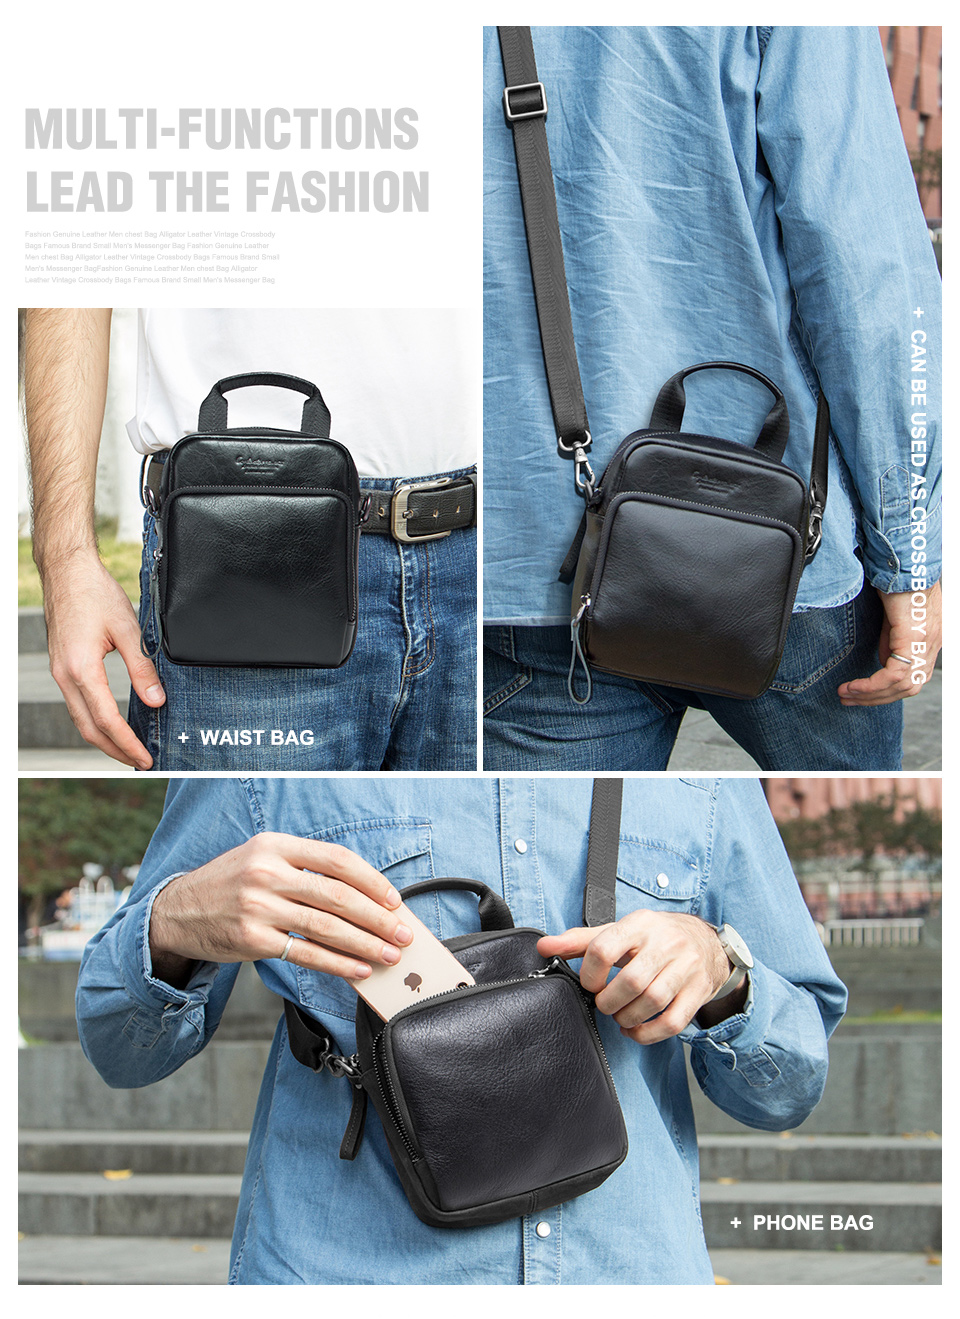 fa176a09dc0 new genuine leather men's shoulder bag casual man's small handbag | eBay